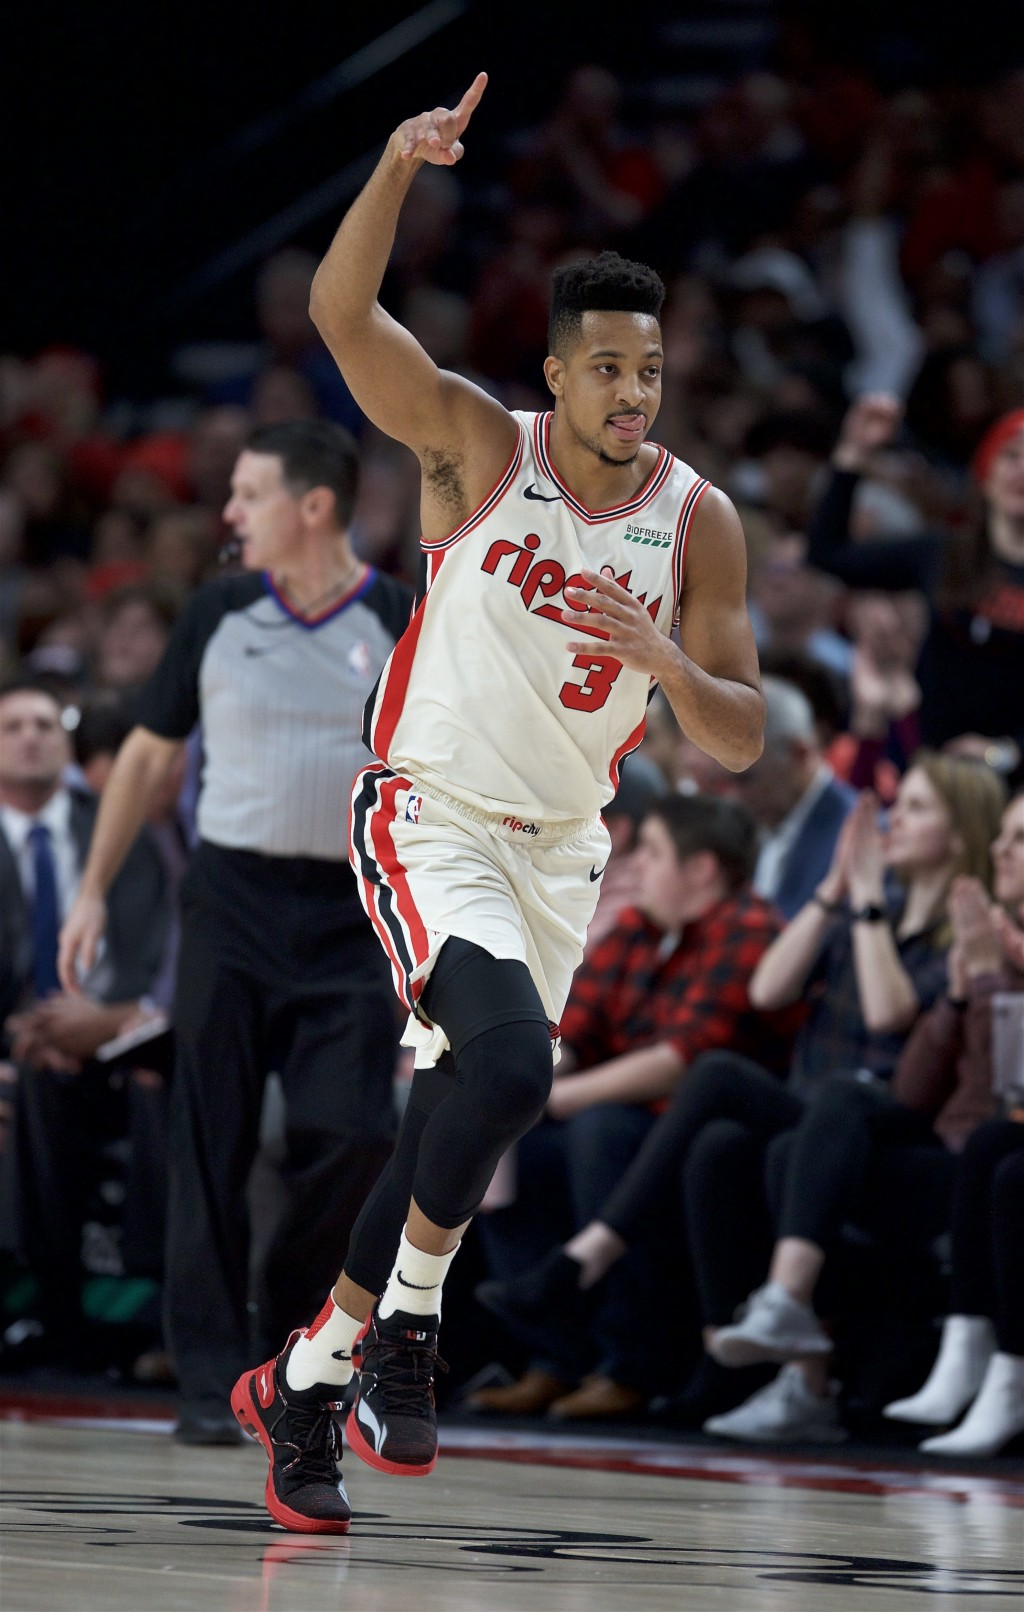 Portland Trail Blazers guard CJ McCollum reacts after making a three-point basket against the Los Angeles Lakers during the first half of an NBA baske...